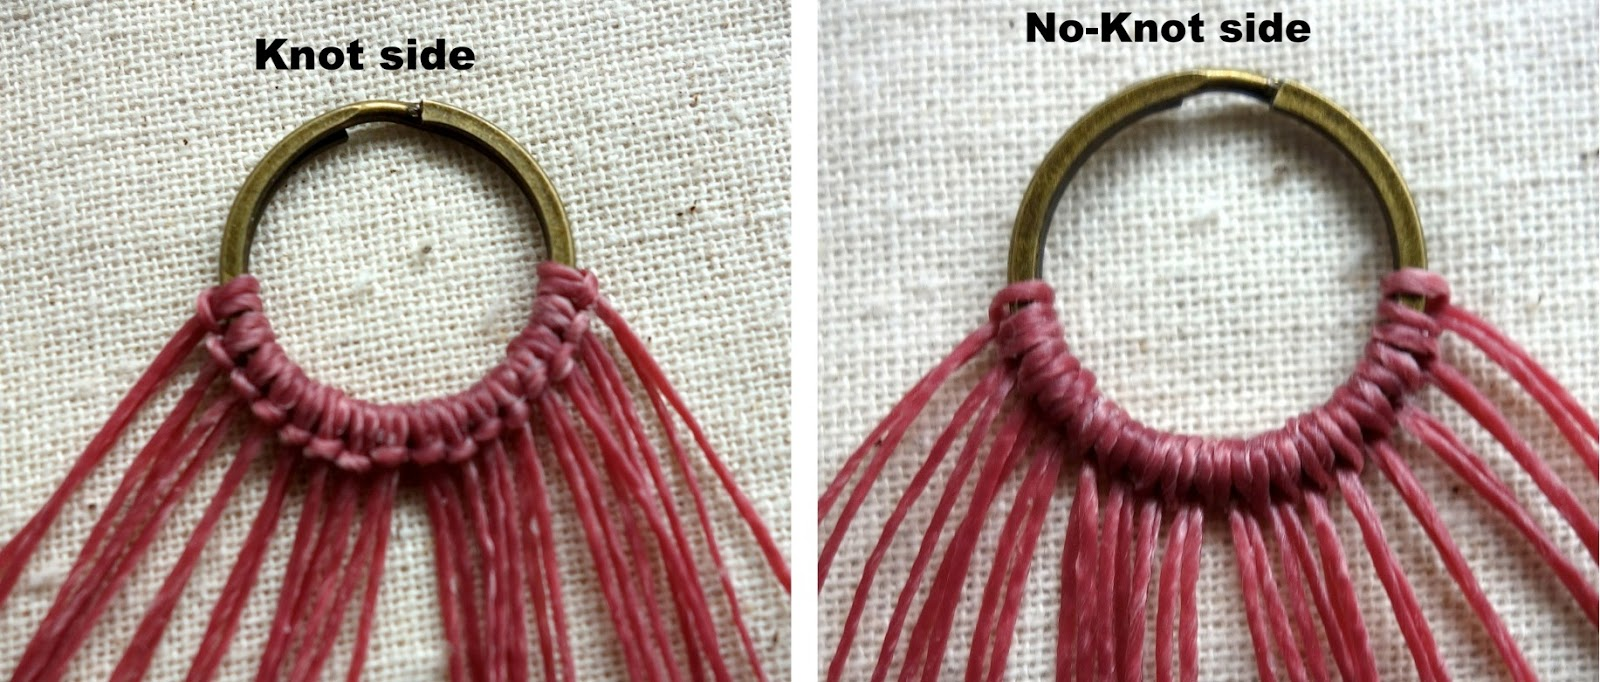 double half hitch knot instructions